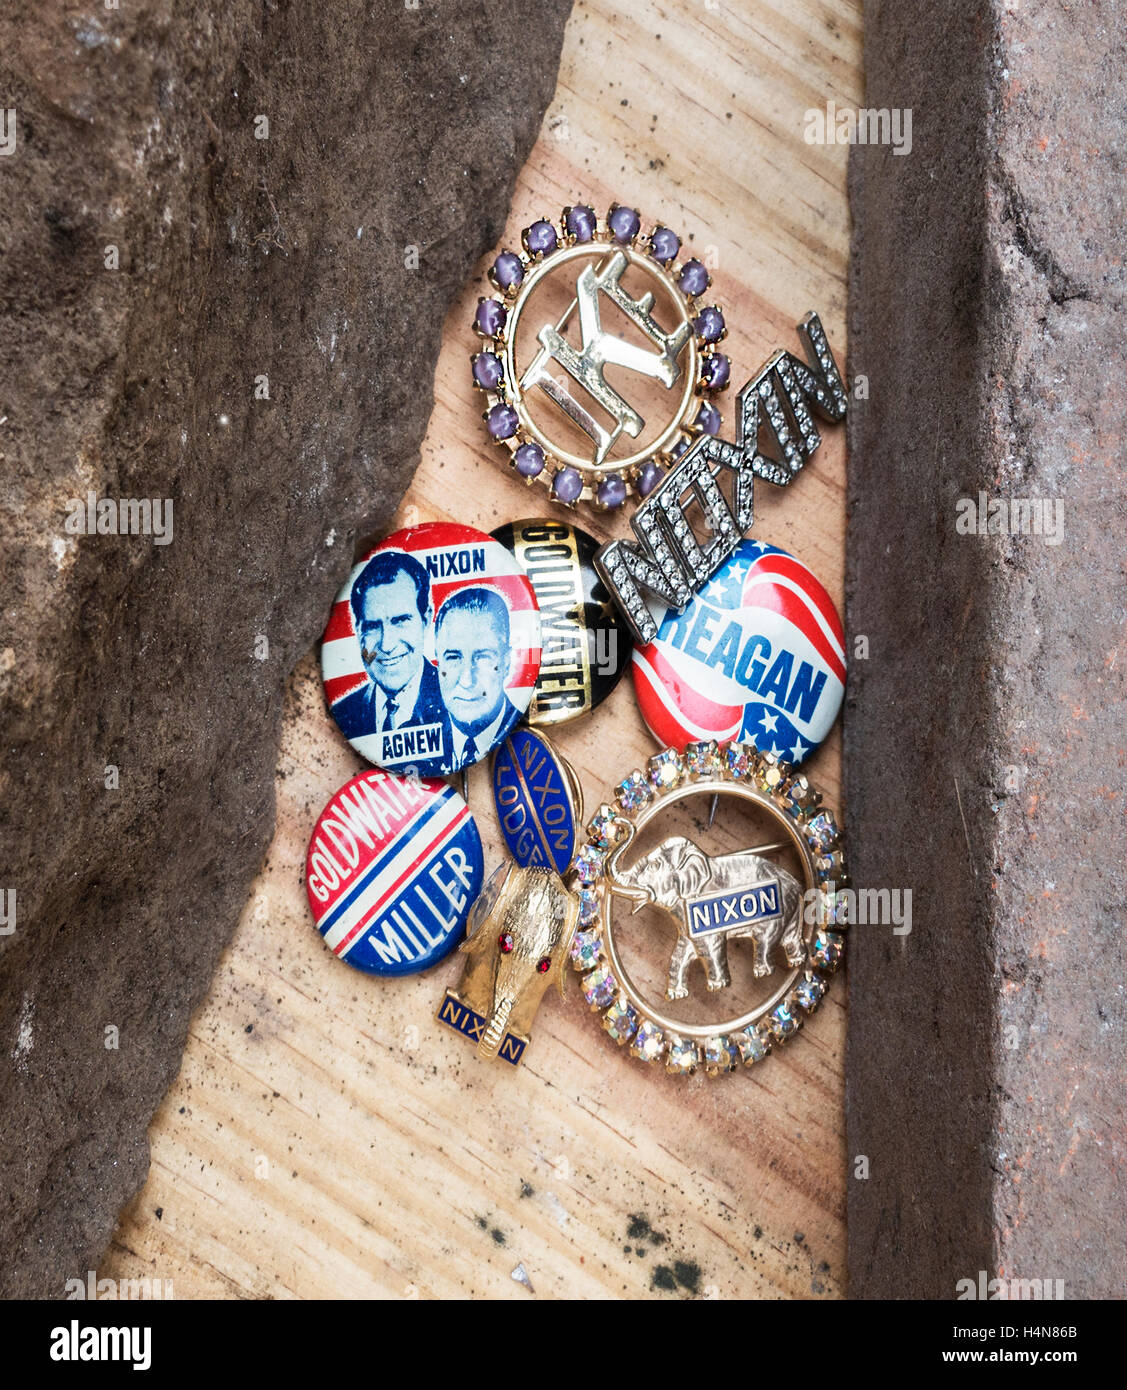 GOP campaign pins between a rock and a hard place - Stock Image